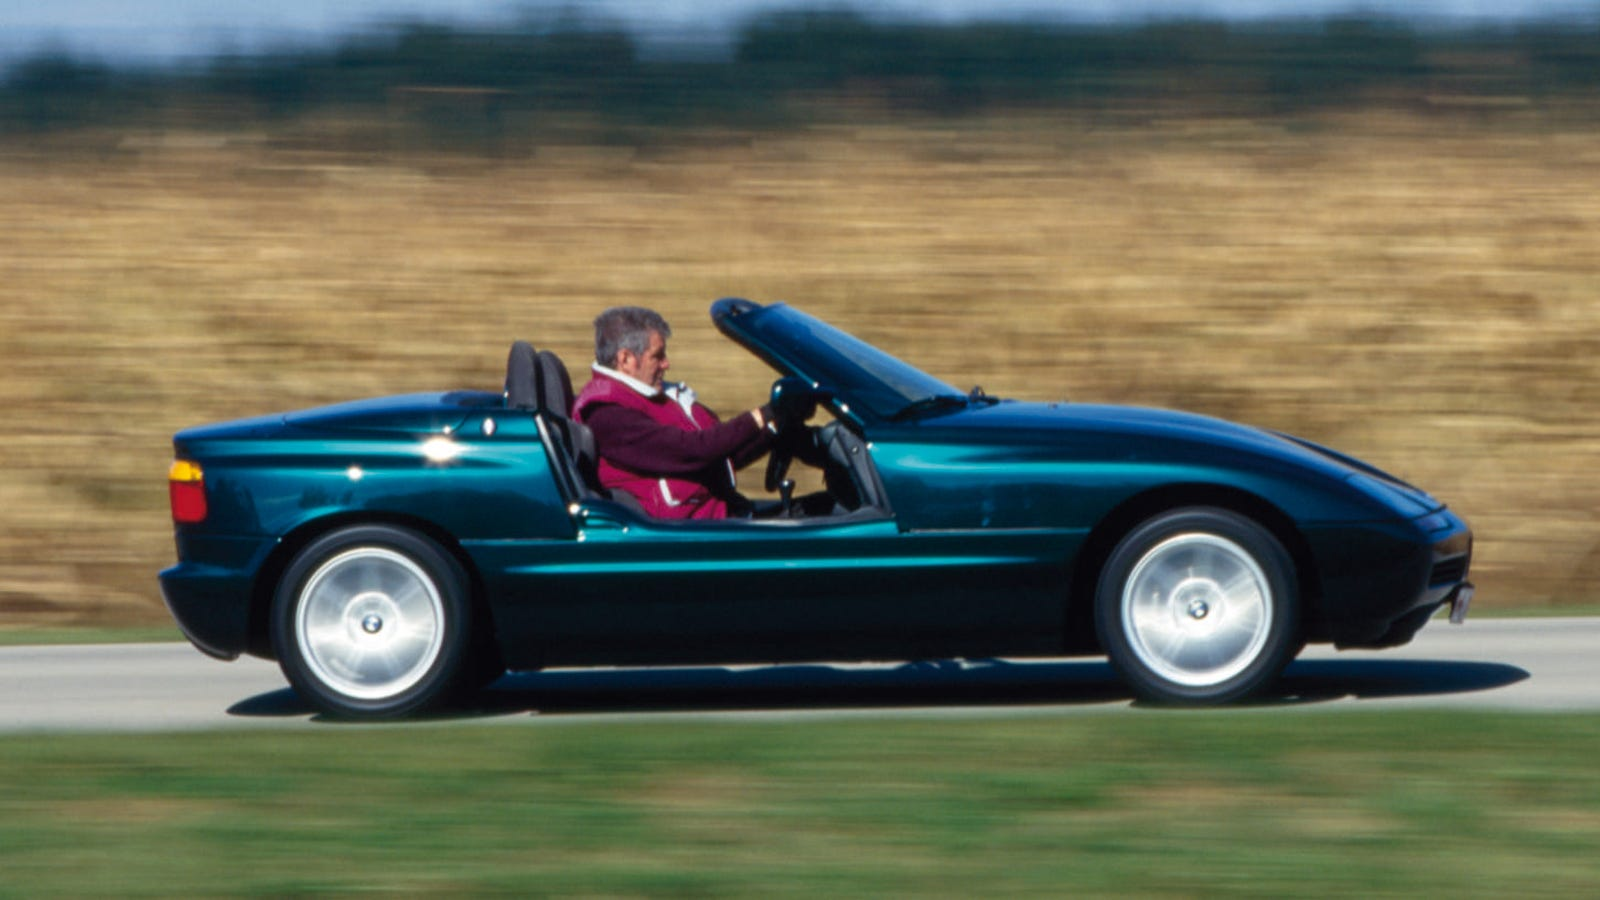 The Bmw Z1 Is A Beautiful Work Of Art That S Underwhelming